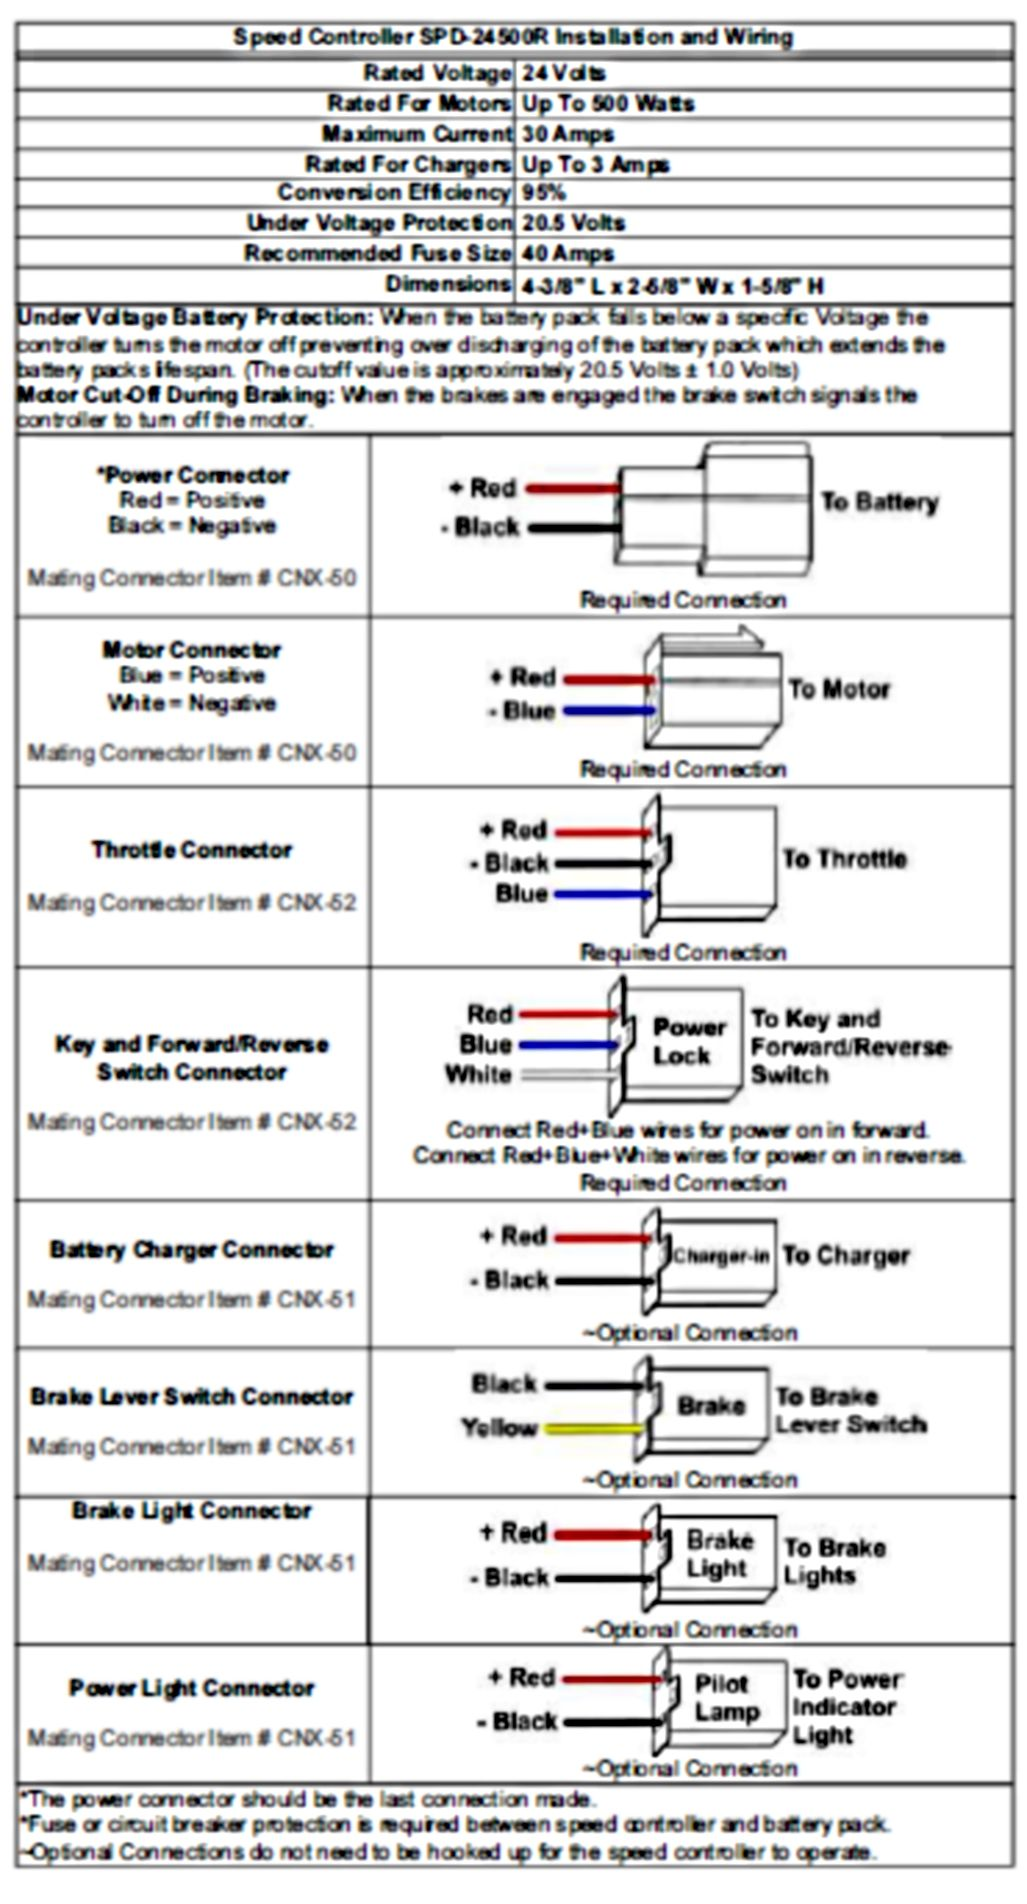 E Bike Controller Wiring Diagram Teamninjaz Me And | electric ... Polaris Electric Scooter Wiring Diagram on electric scooter motor, electric window wiring diagram, electric scooter assembly, gas scooter diagrams, electric scooter manuals, electric scooter engine, electric scooter frame, electric scooter specifications, electric scooter repair, electric scooter parts, electric scooter brakes, electric scooter drawings, pinout diagrams, electric scooter schematics, electric scooter suspension, electric scooter drive system, electric scooters for adults, electric scooters 30 mph, electric skateboard diagram,